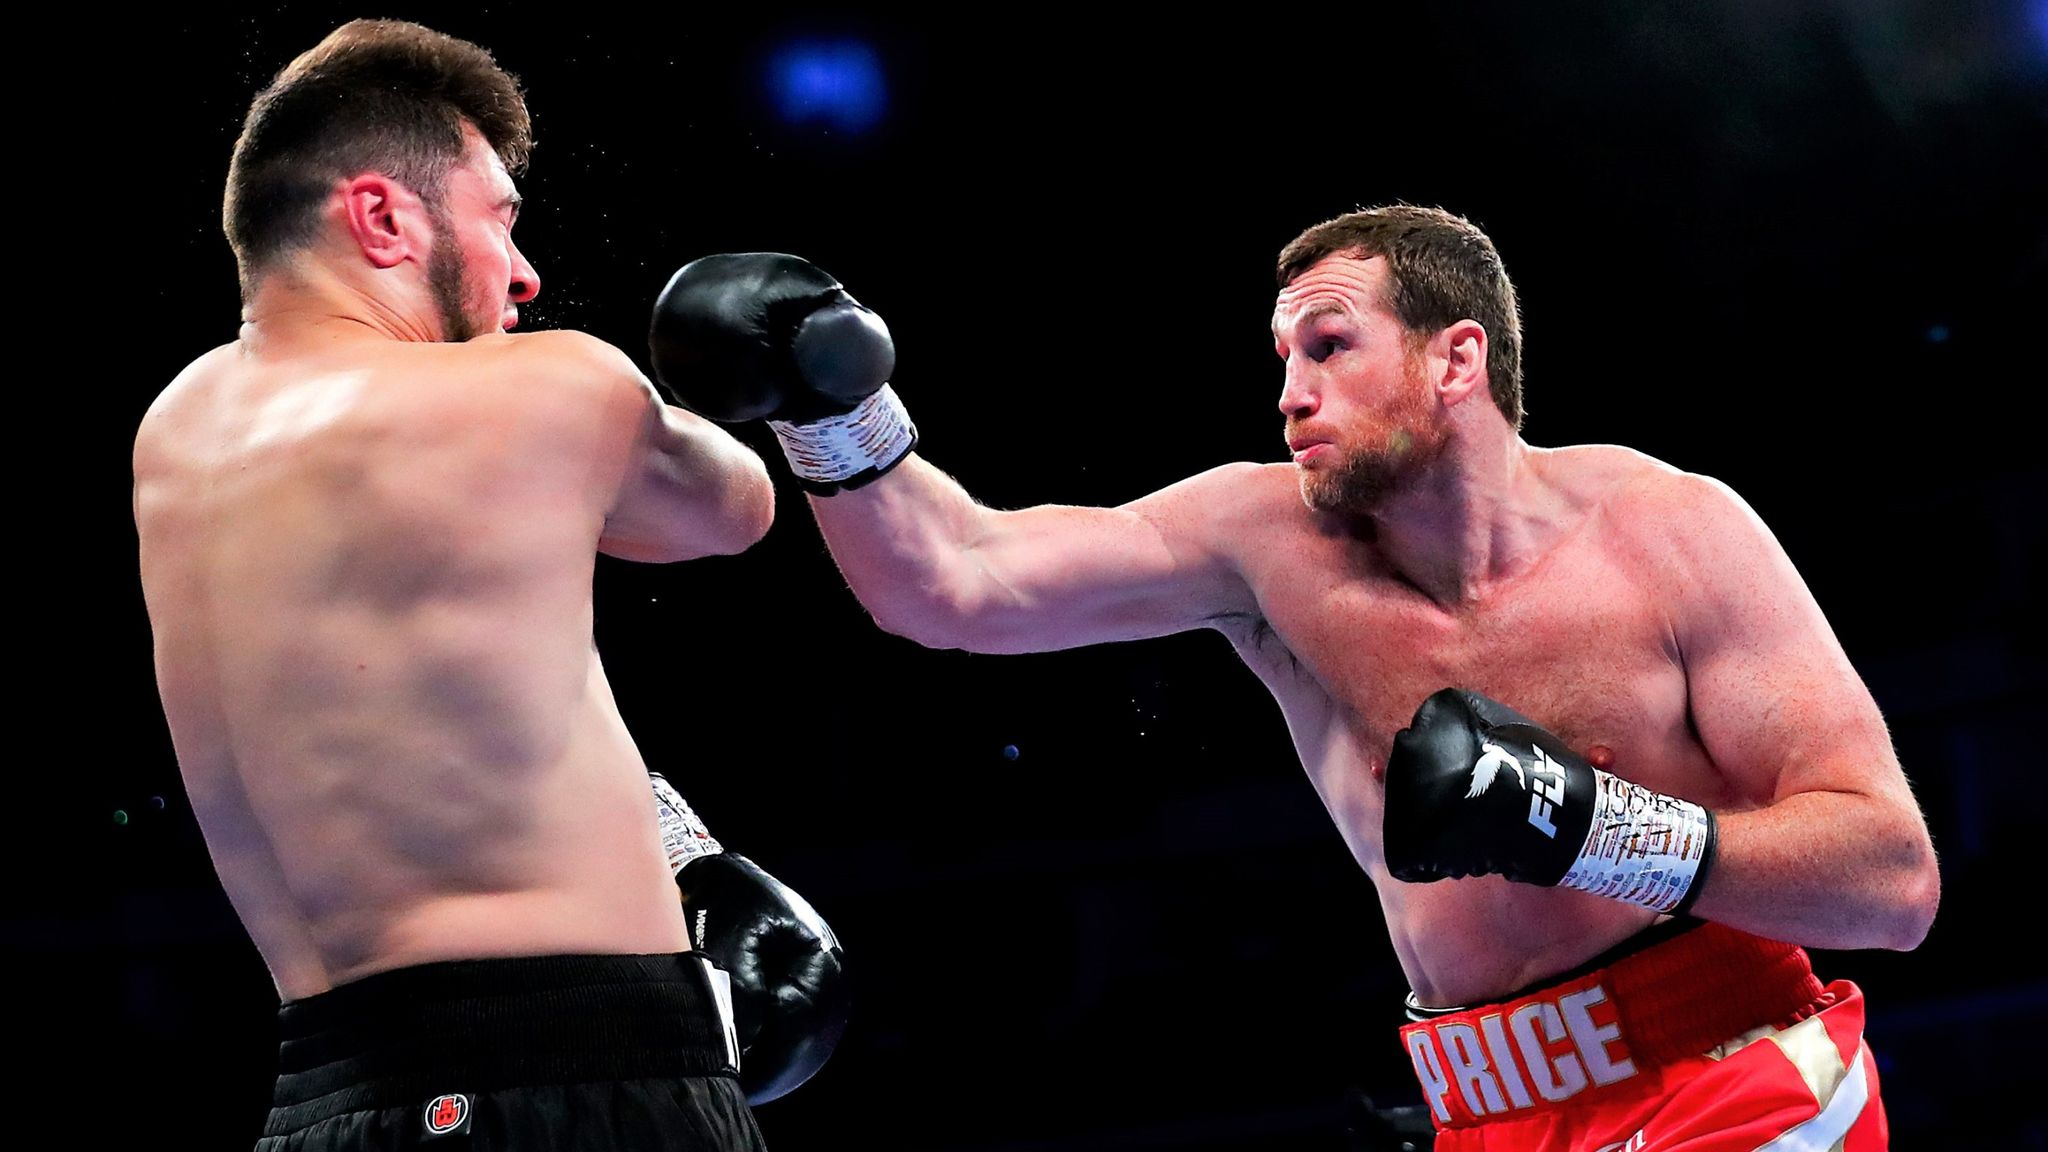 David Price would relish a battle with Lucas Browne